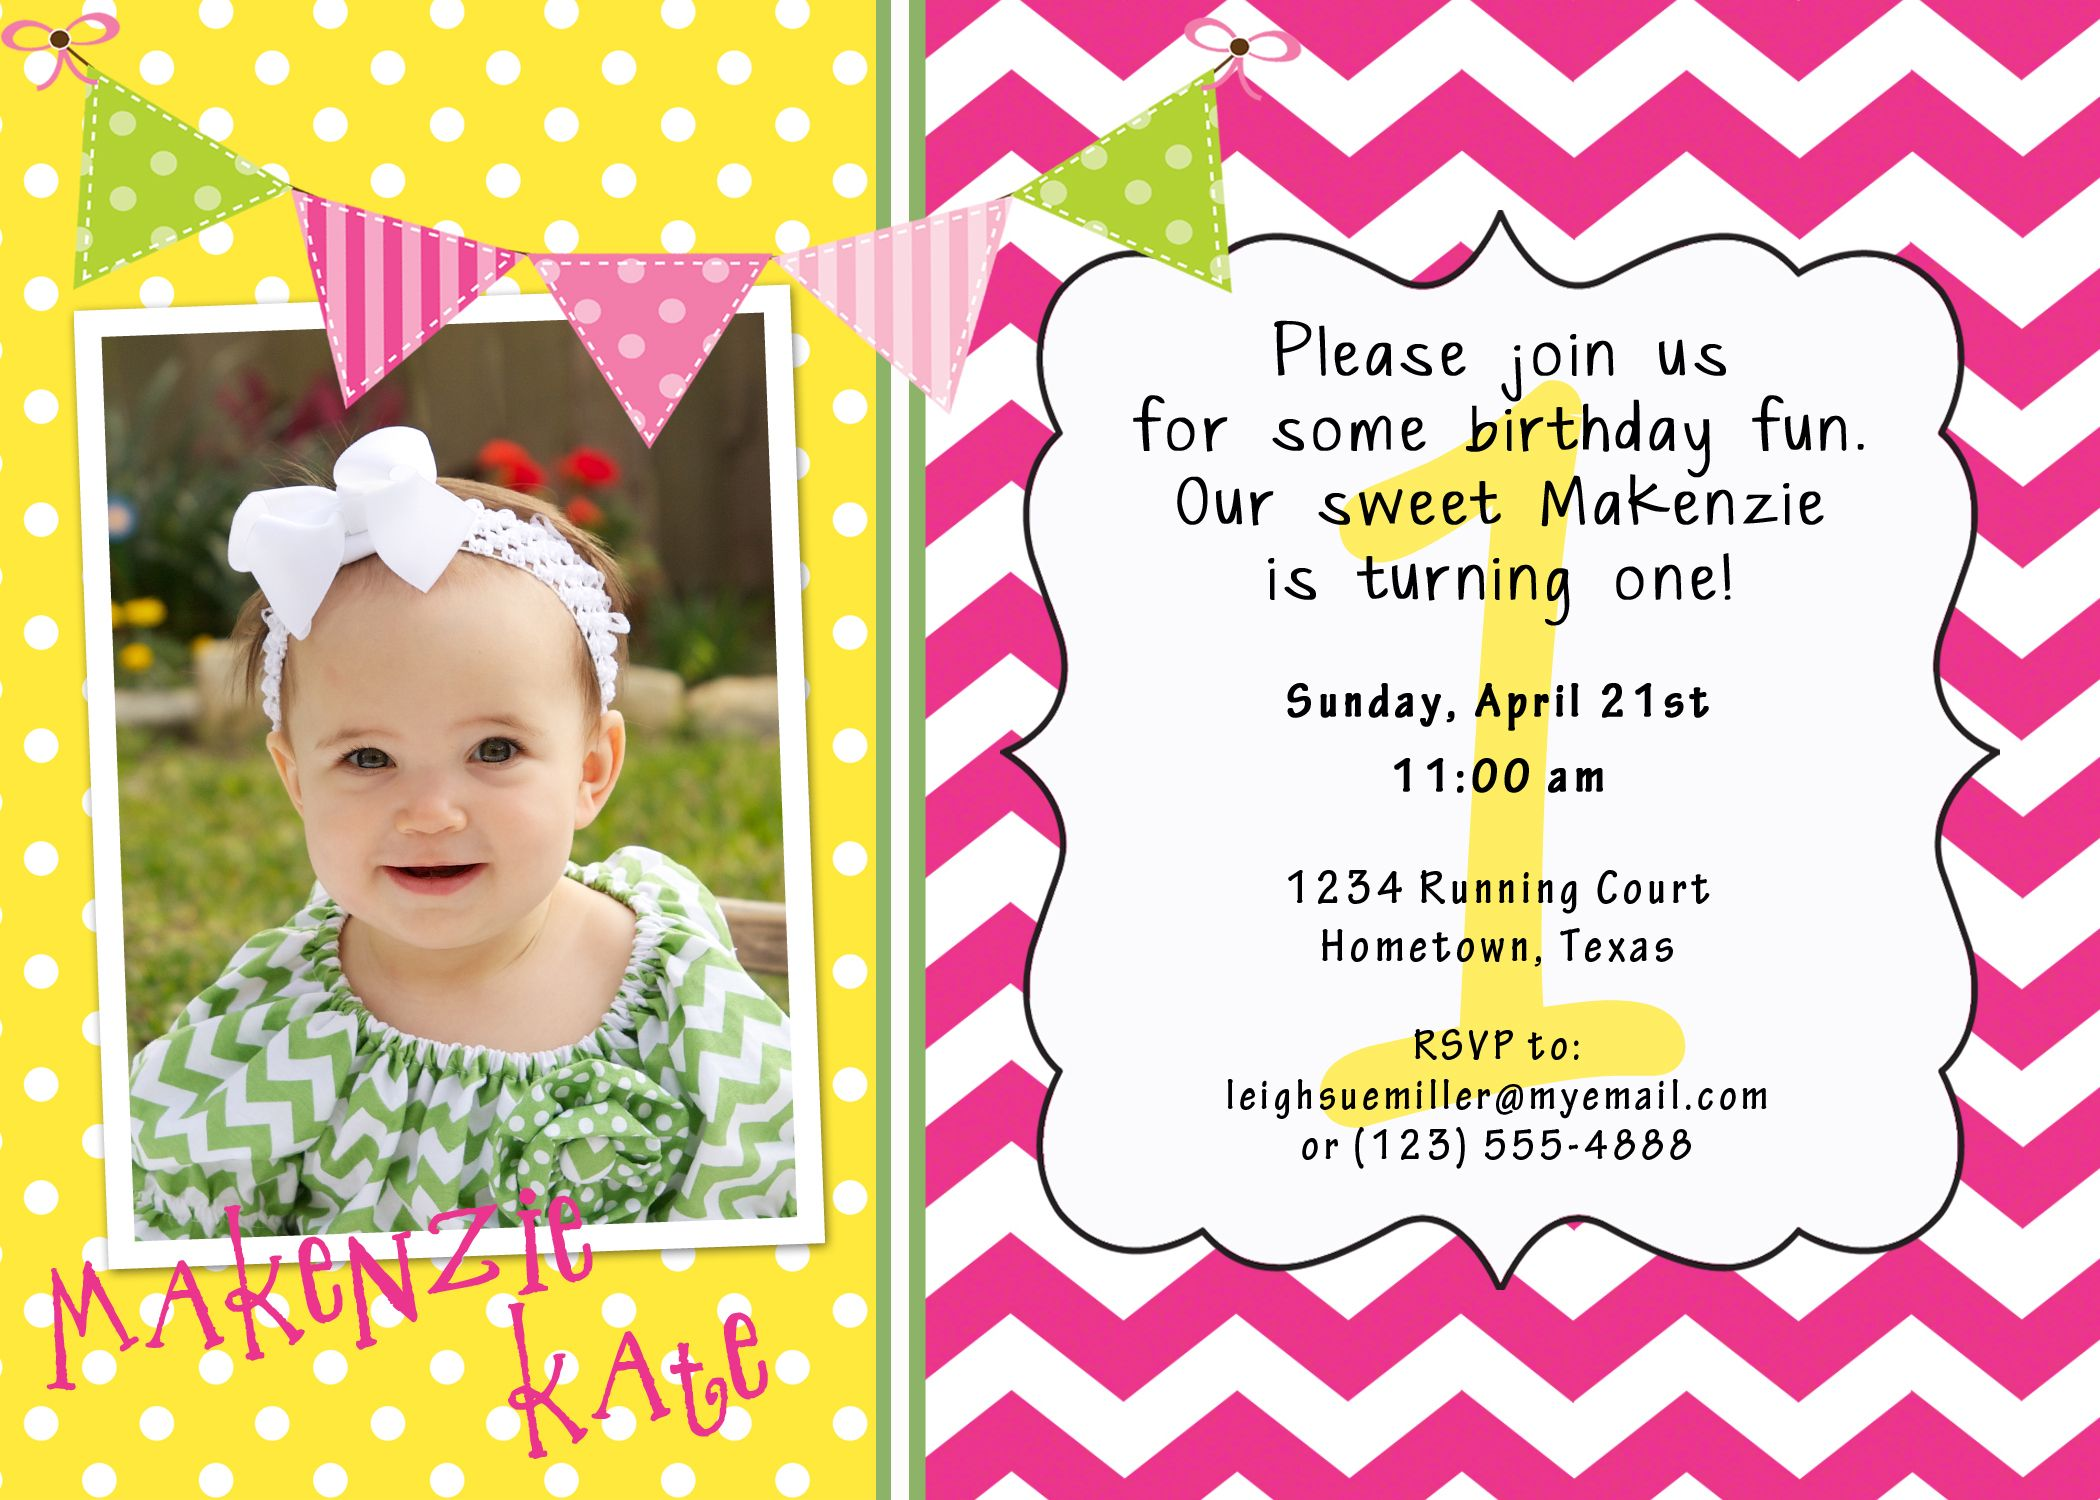 Pin By Jen Fisher On 1st Birthday Ideas One Year Birthday Birthday Party Invitations Birthday Fun